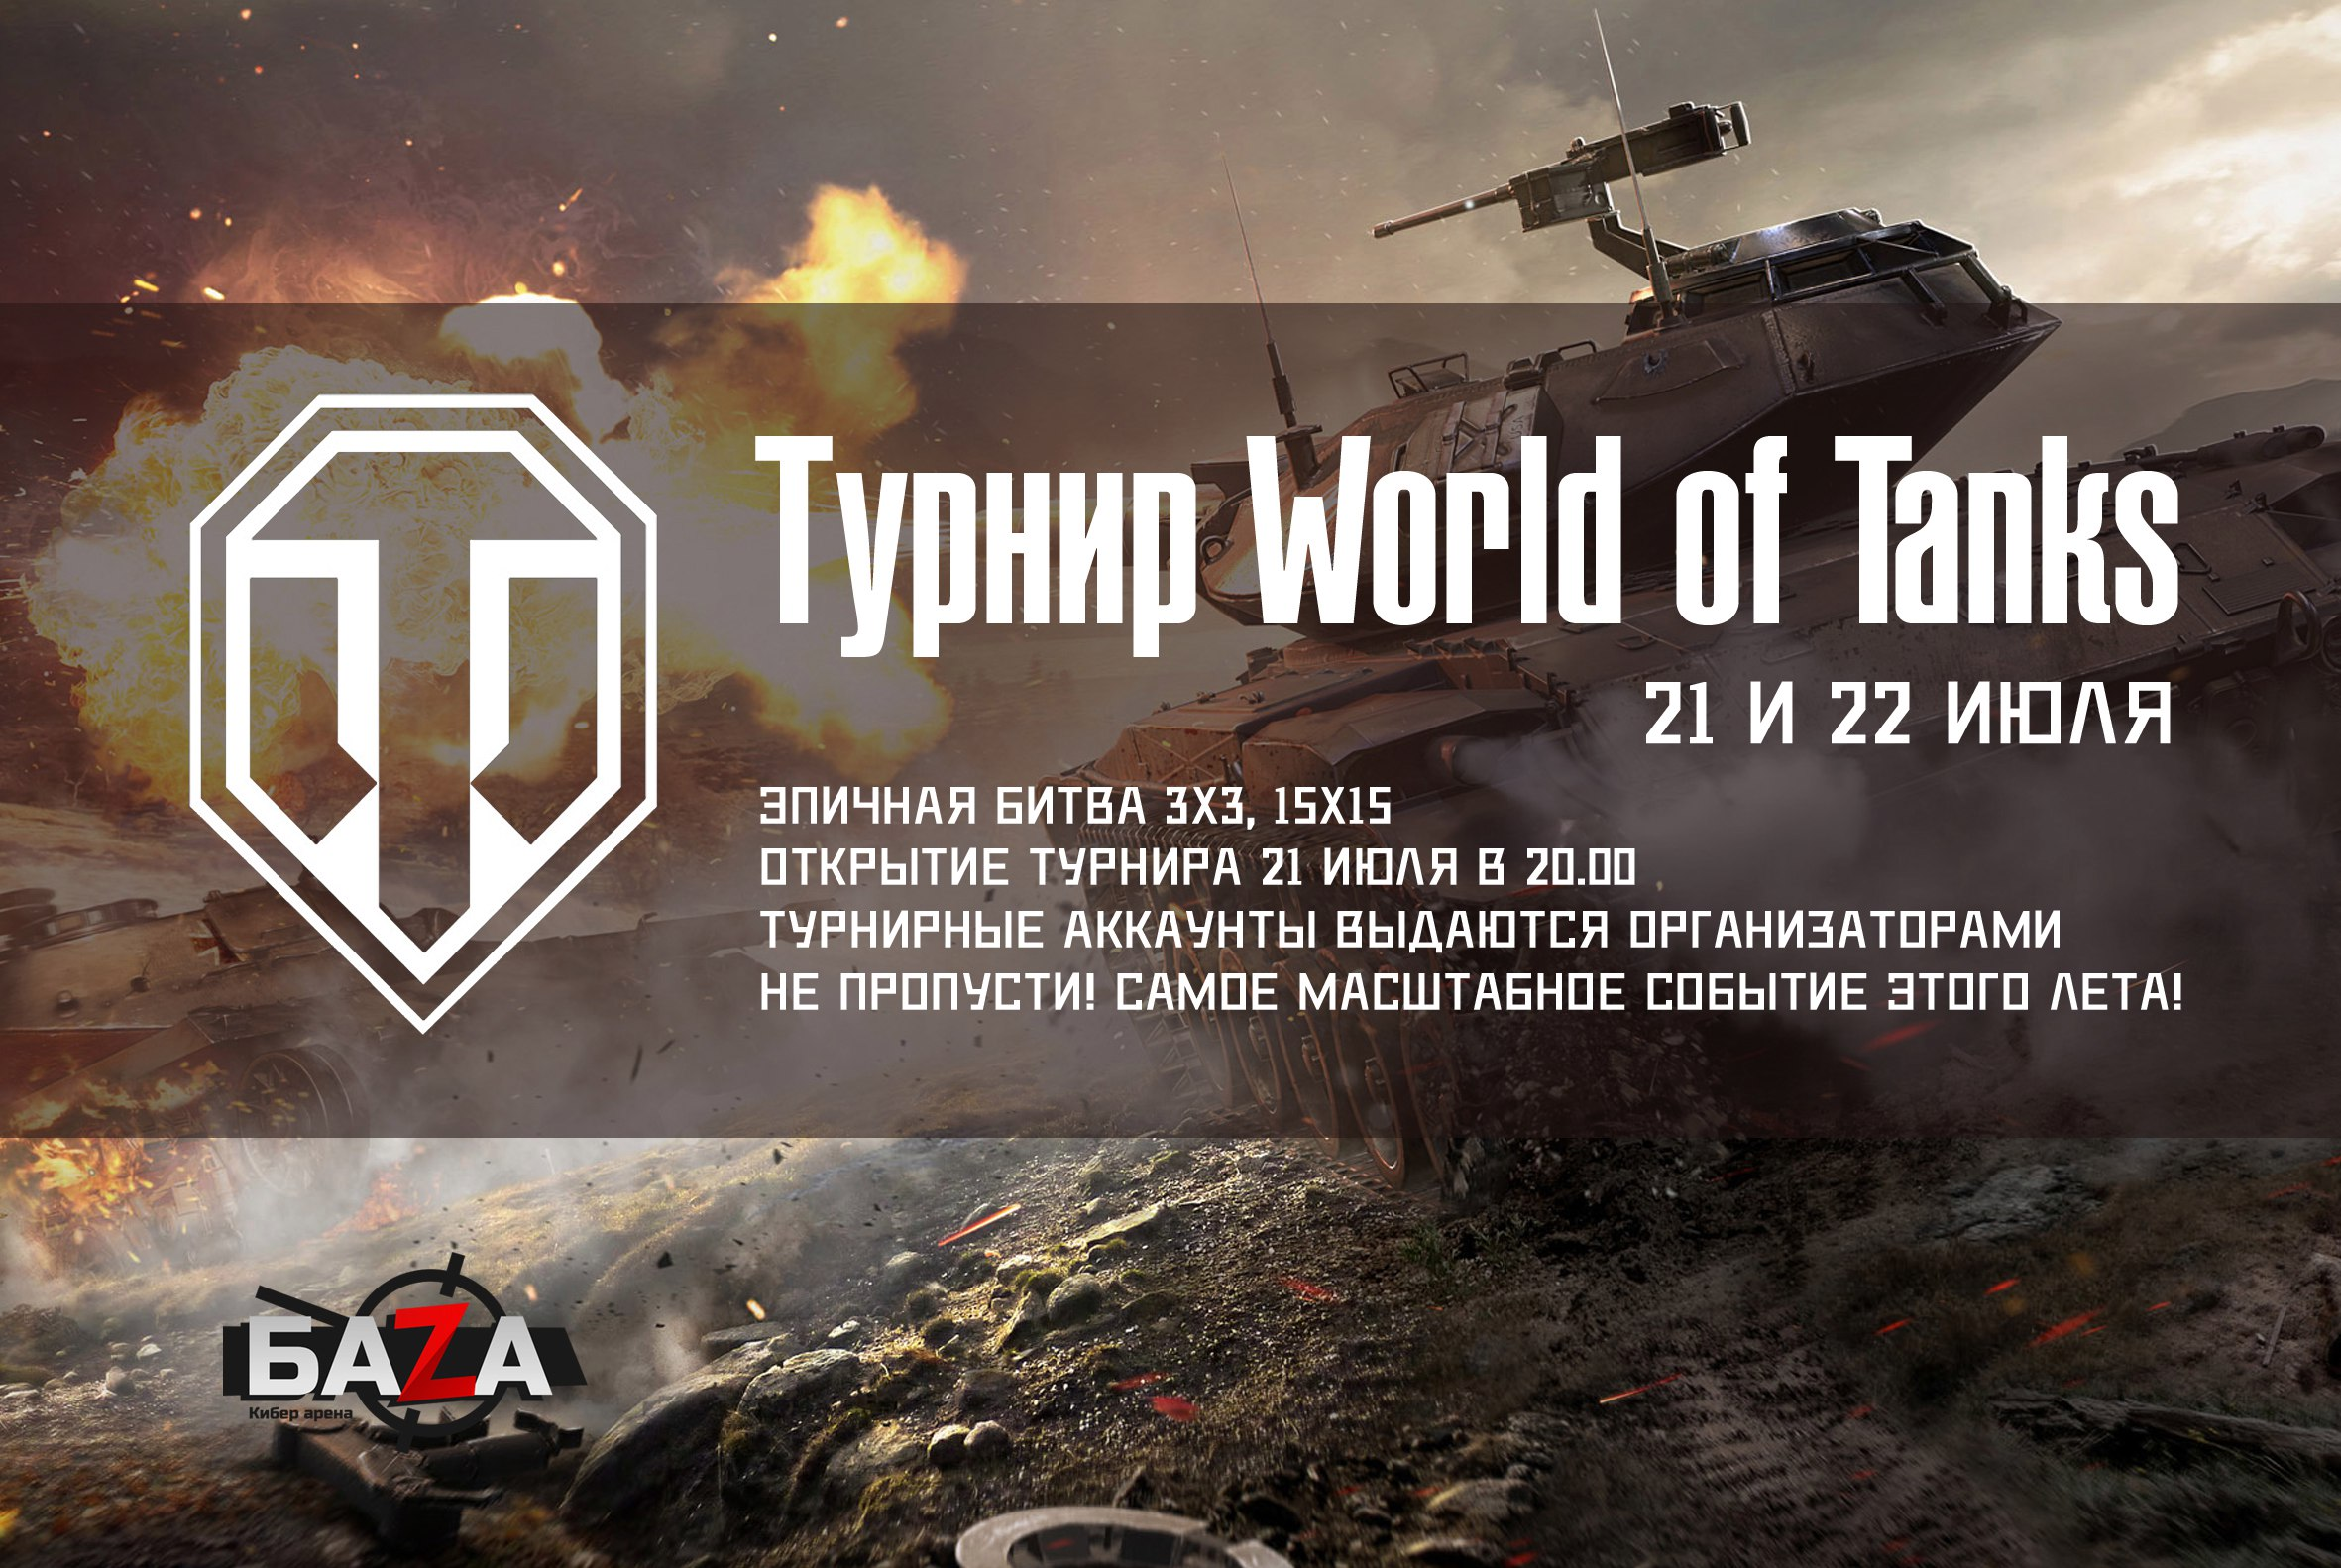 turnir-world-of-tanks-cybersport-baza-sportkaliningrad